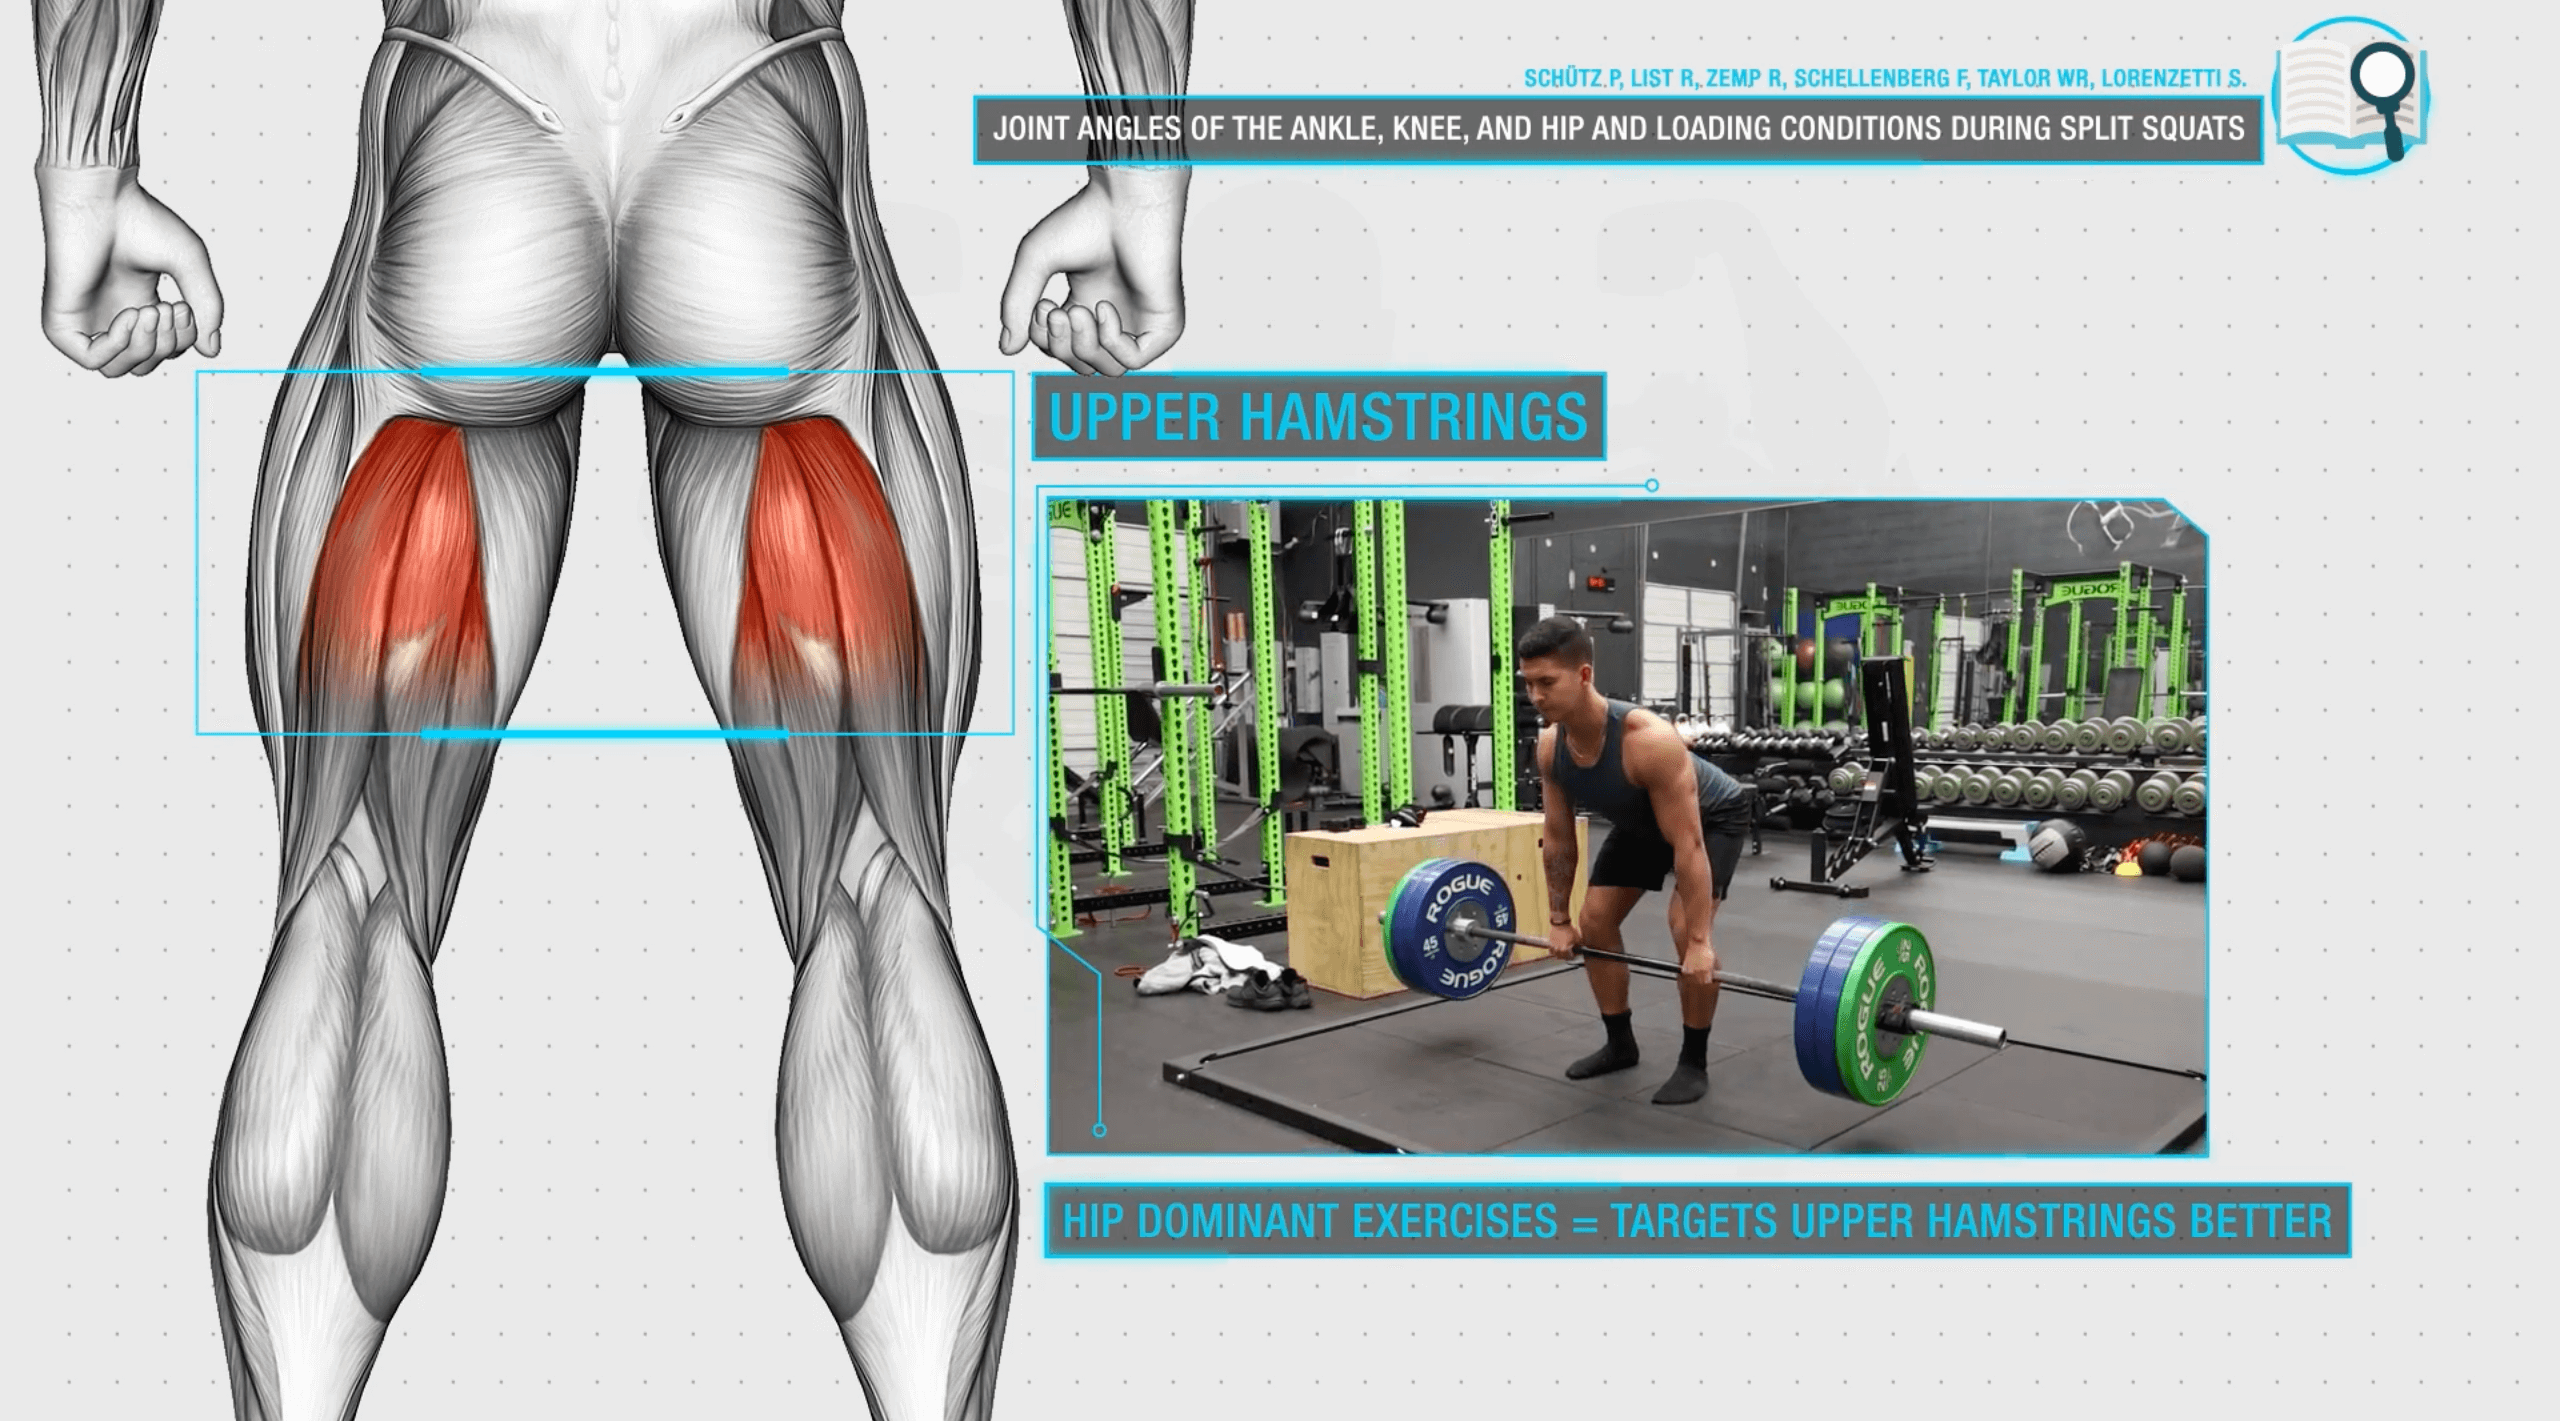 Upper hamstrings development